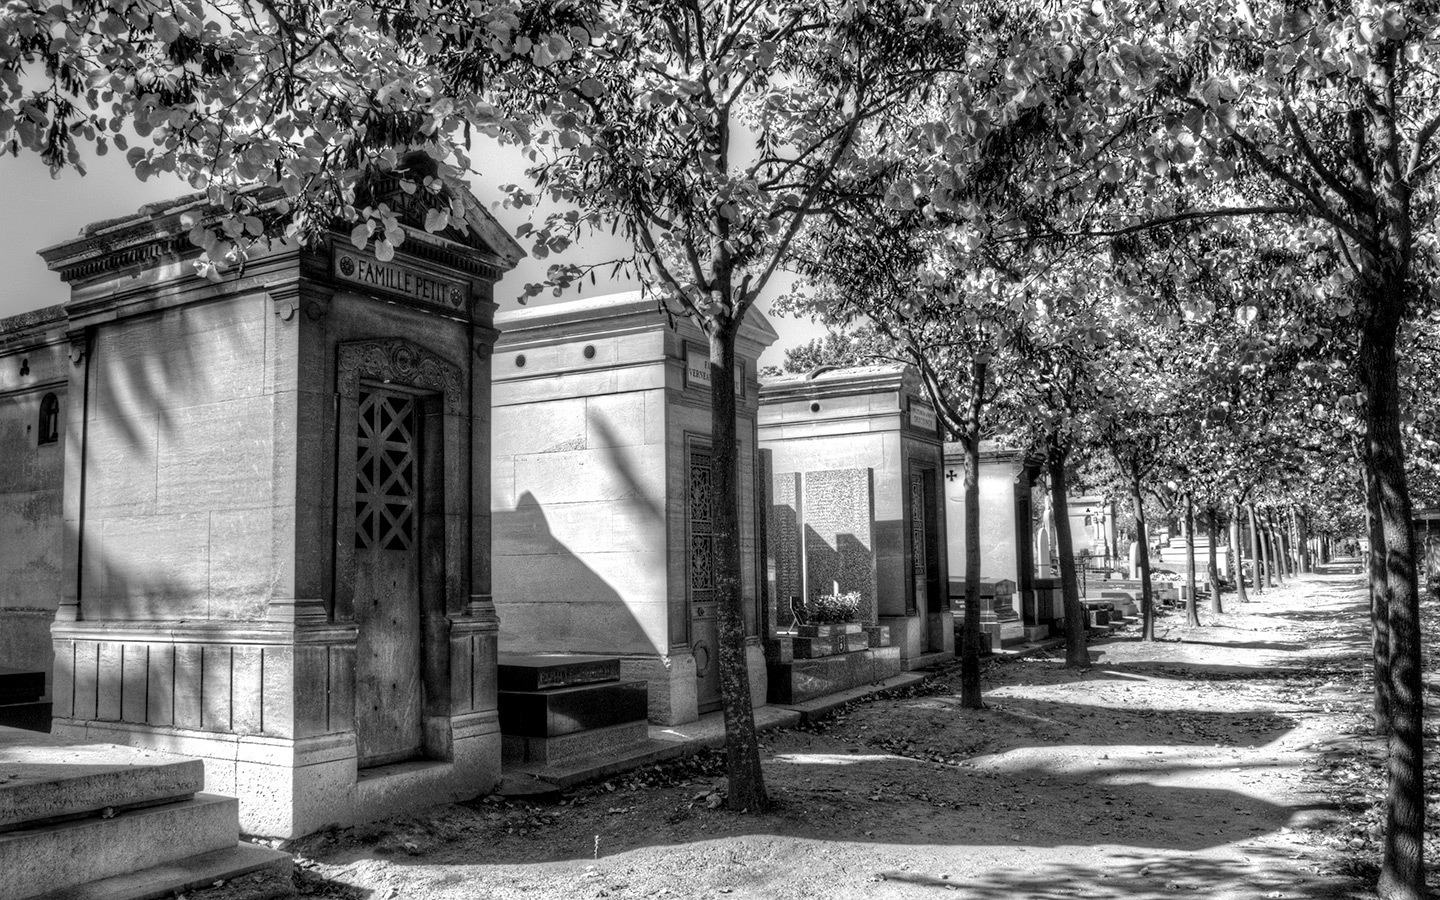 Ornate tombs in the Montparnasse cemetery, Paris